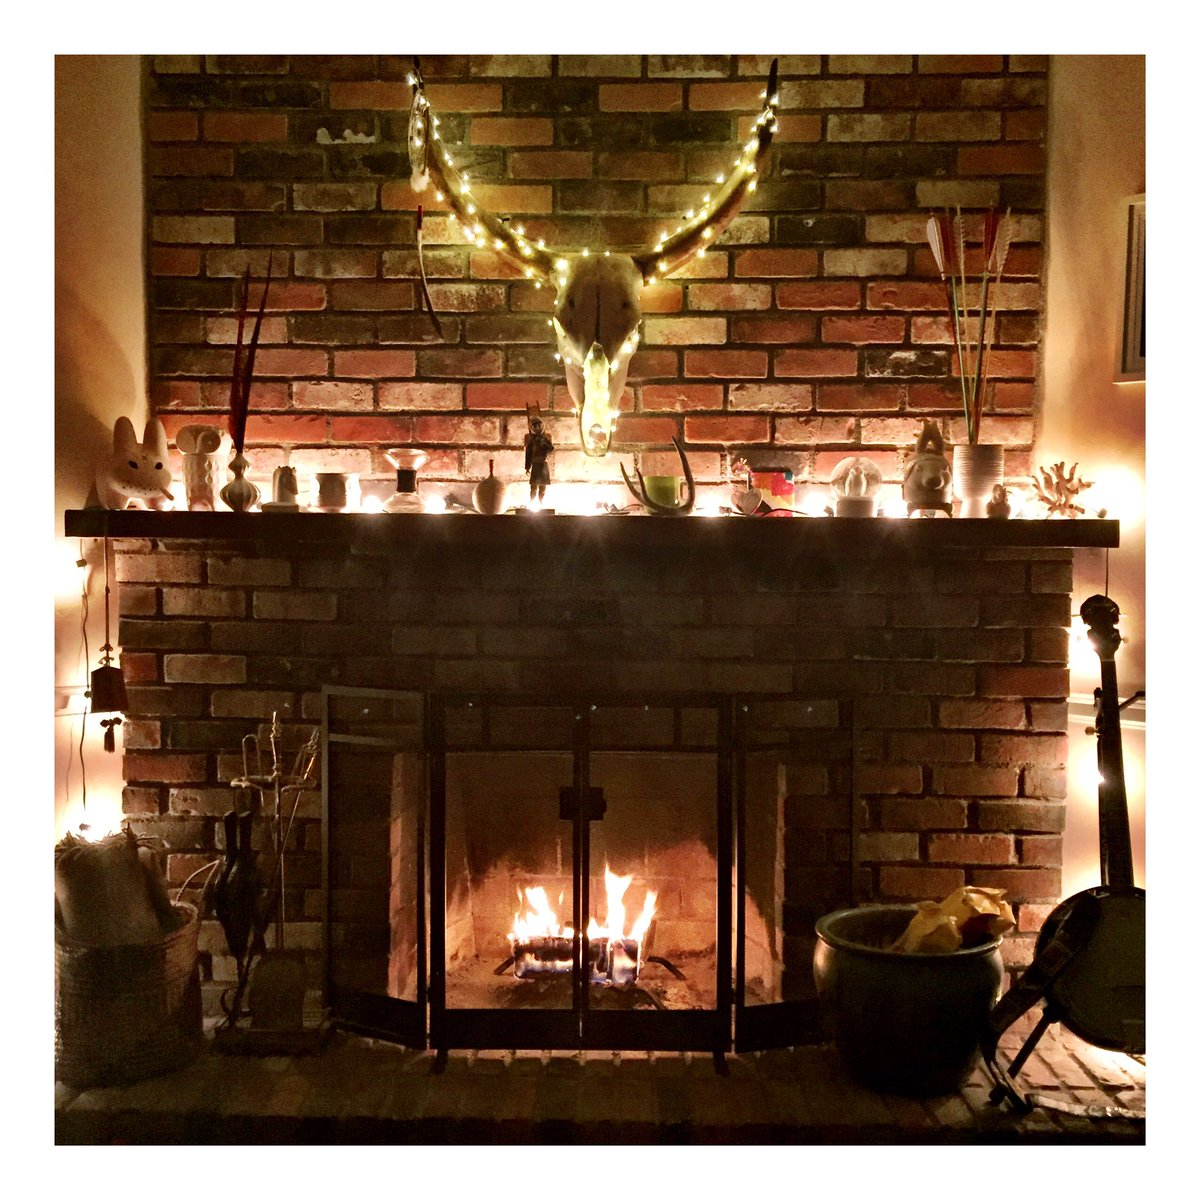 Arts and crafts mantel - Mantel Hashtag On Twitter Arts And Crafts